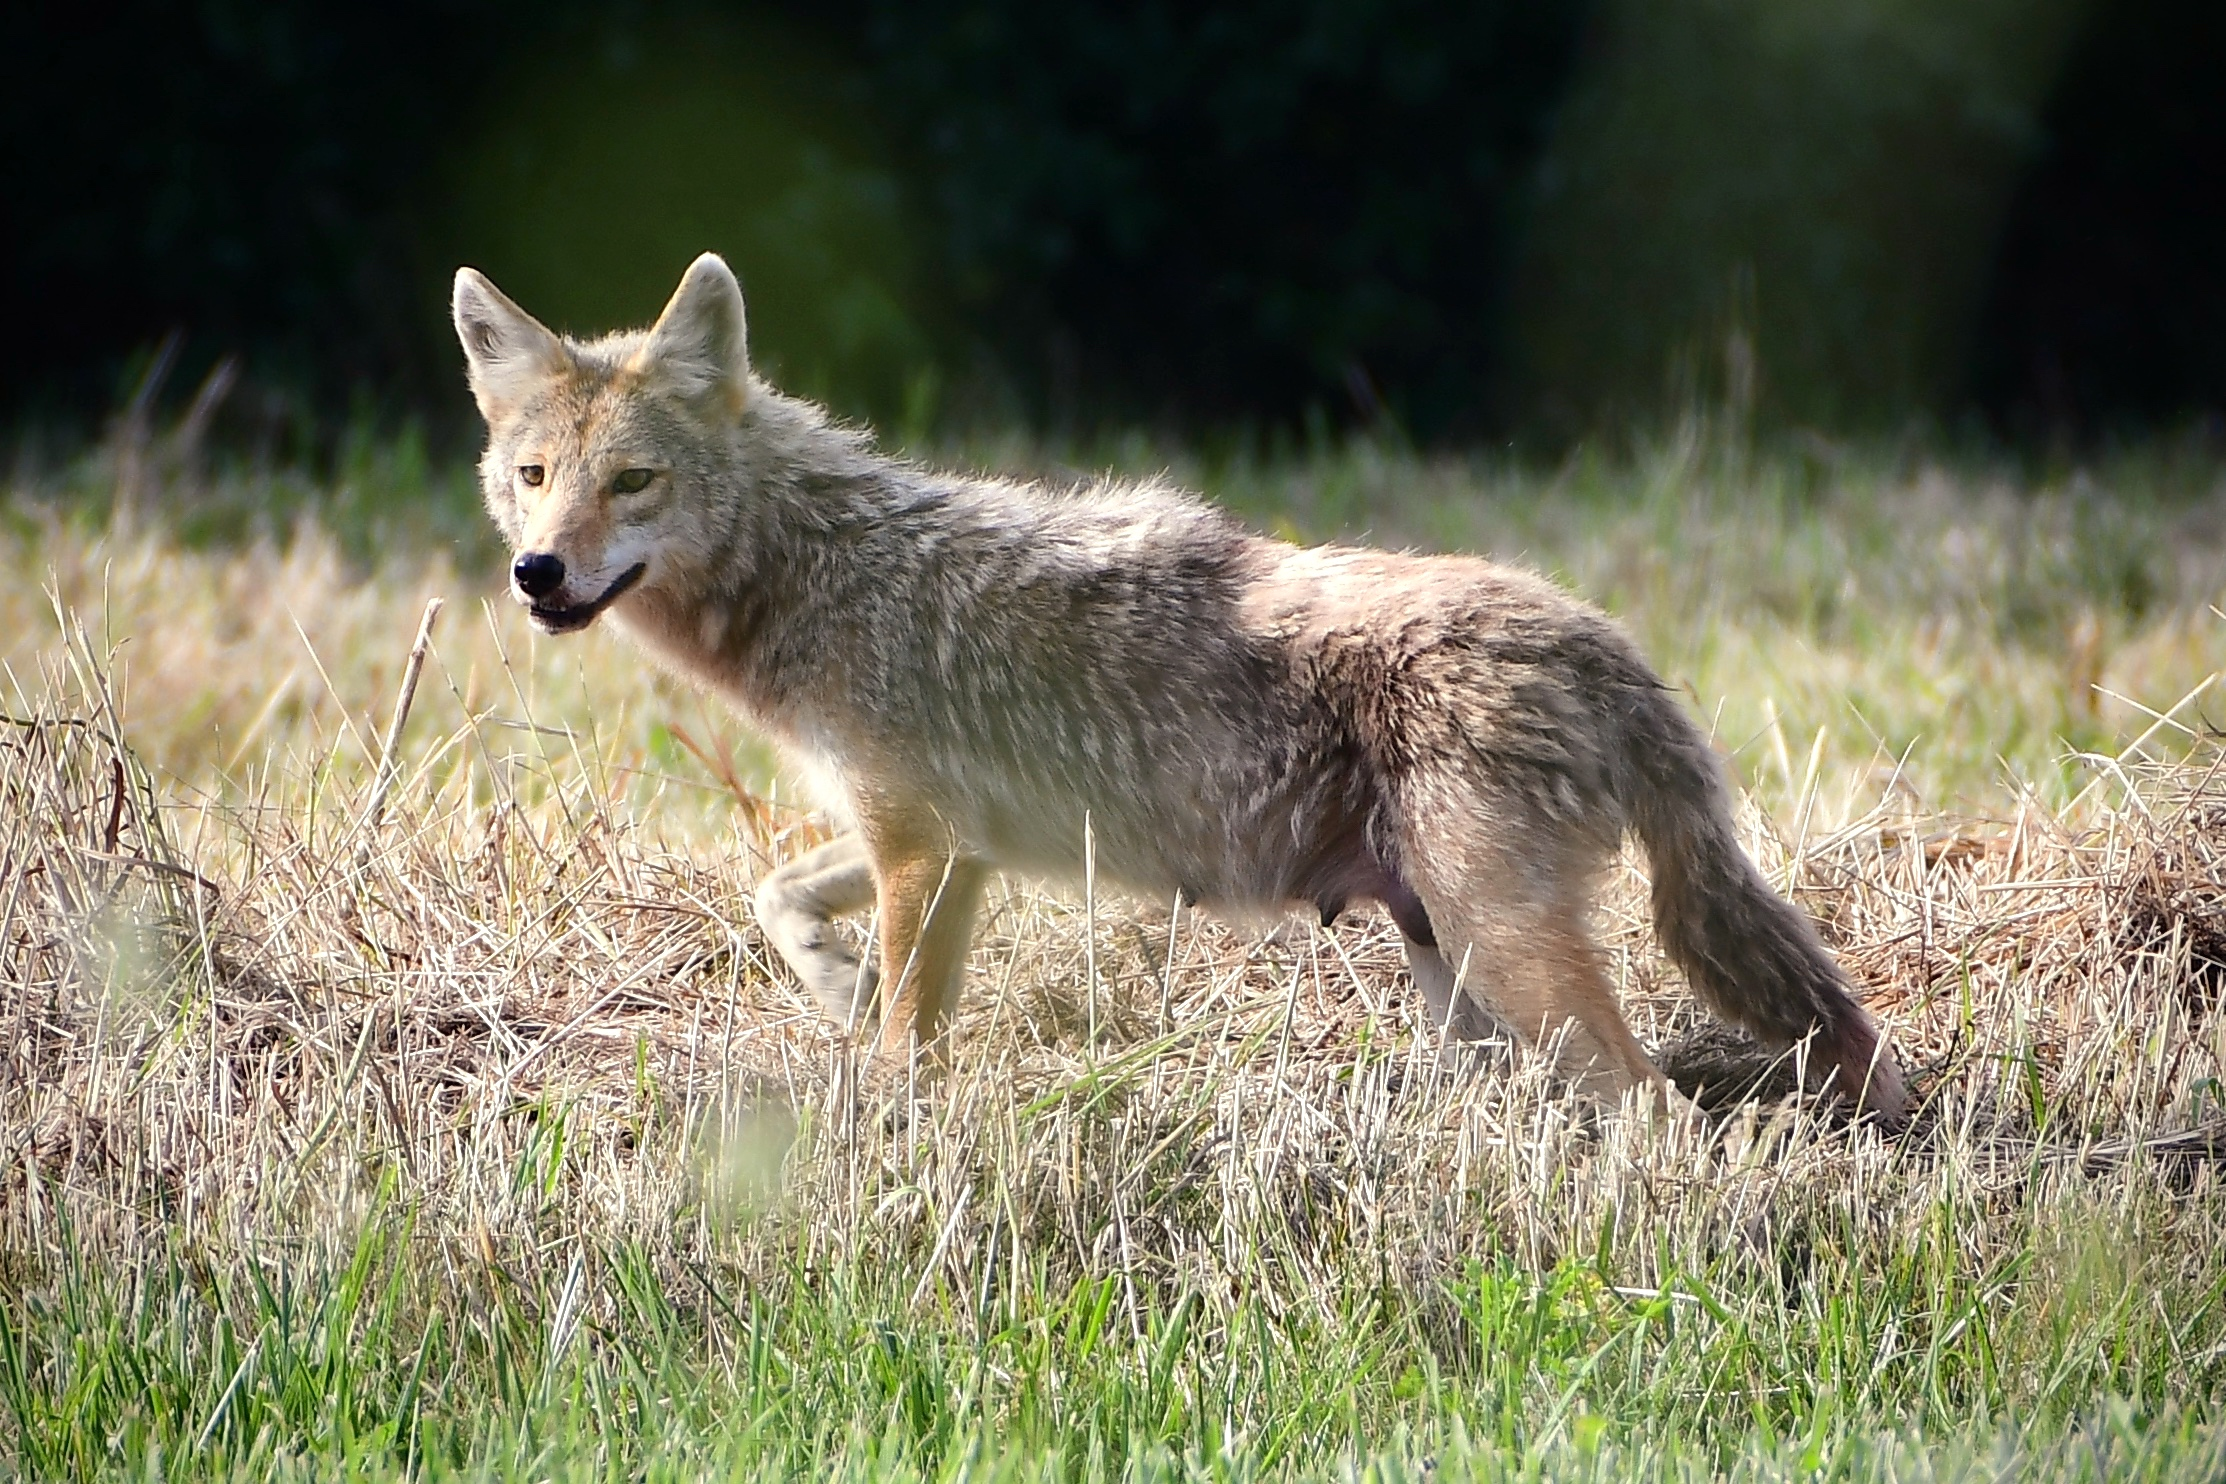 Away from her pups, she takes in the view on a nice afternoon. nature, wildlife, animal, mammal, coyote, prairie, plant, grass Photo: Brian Chase